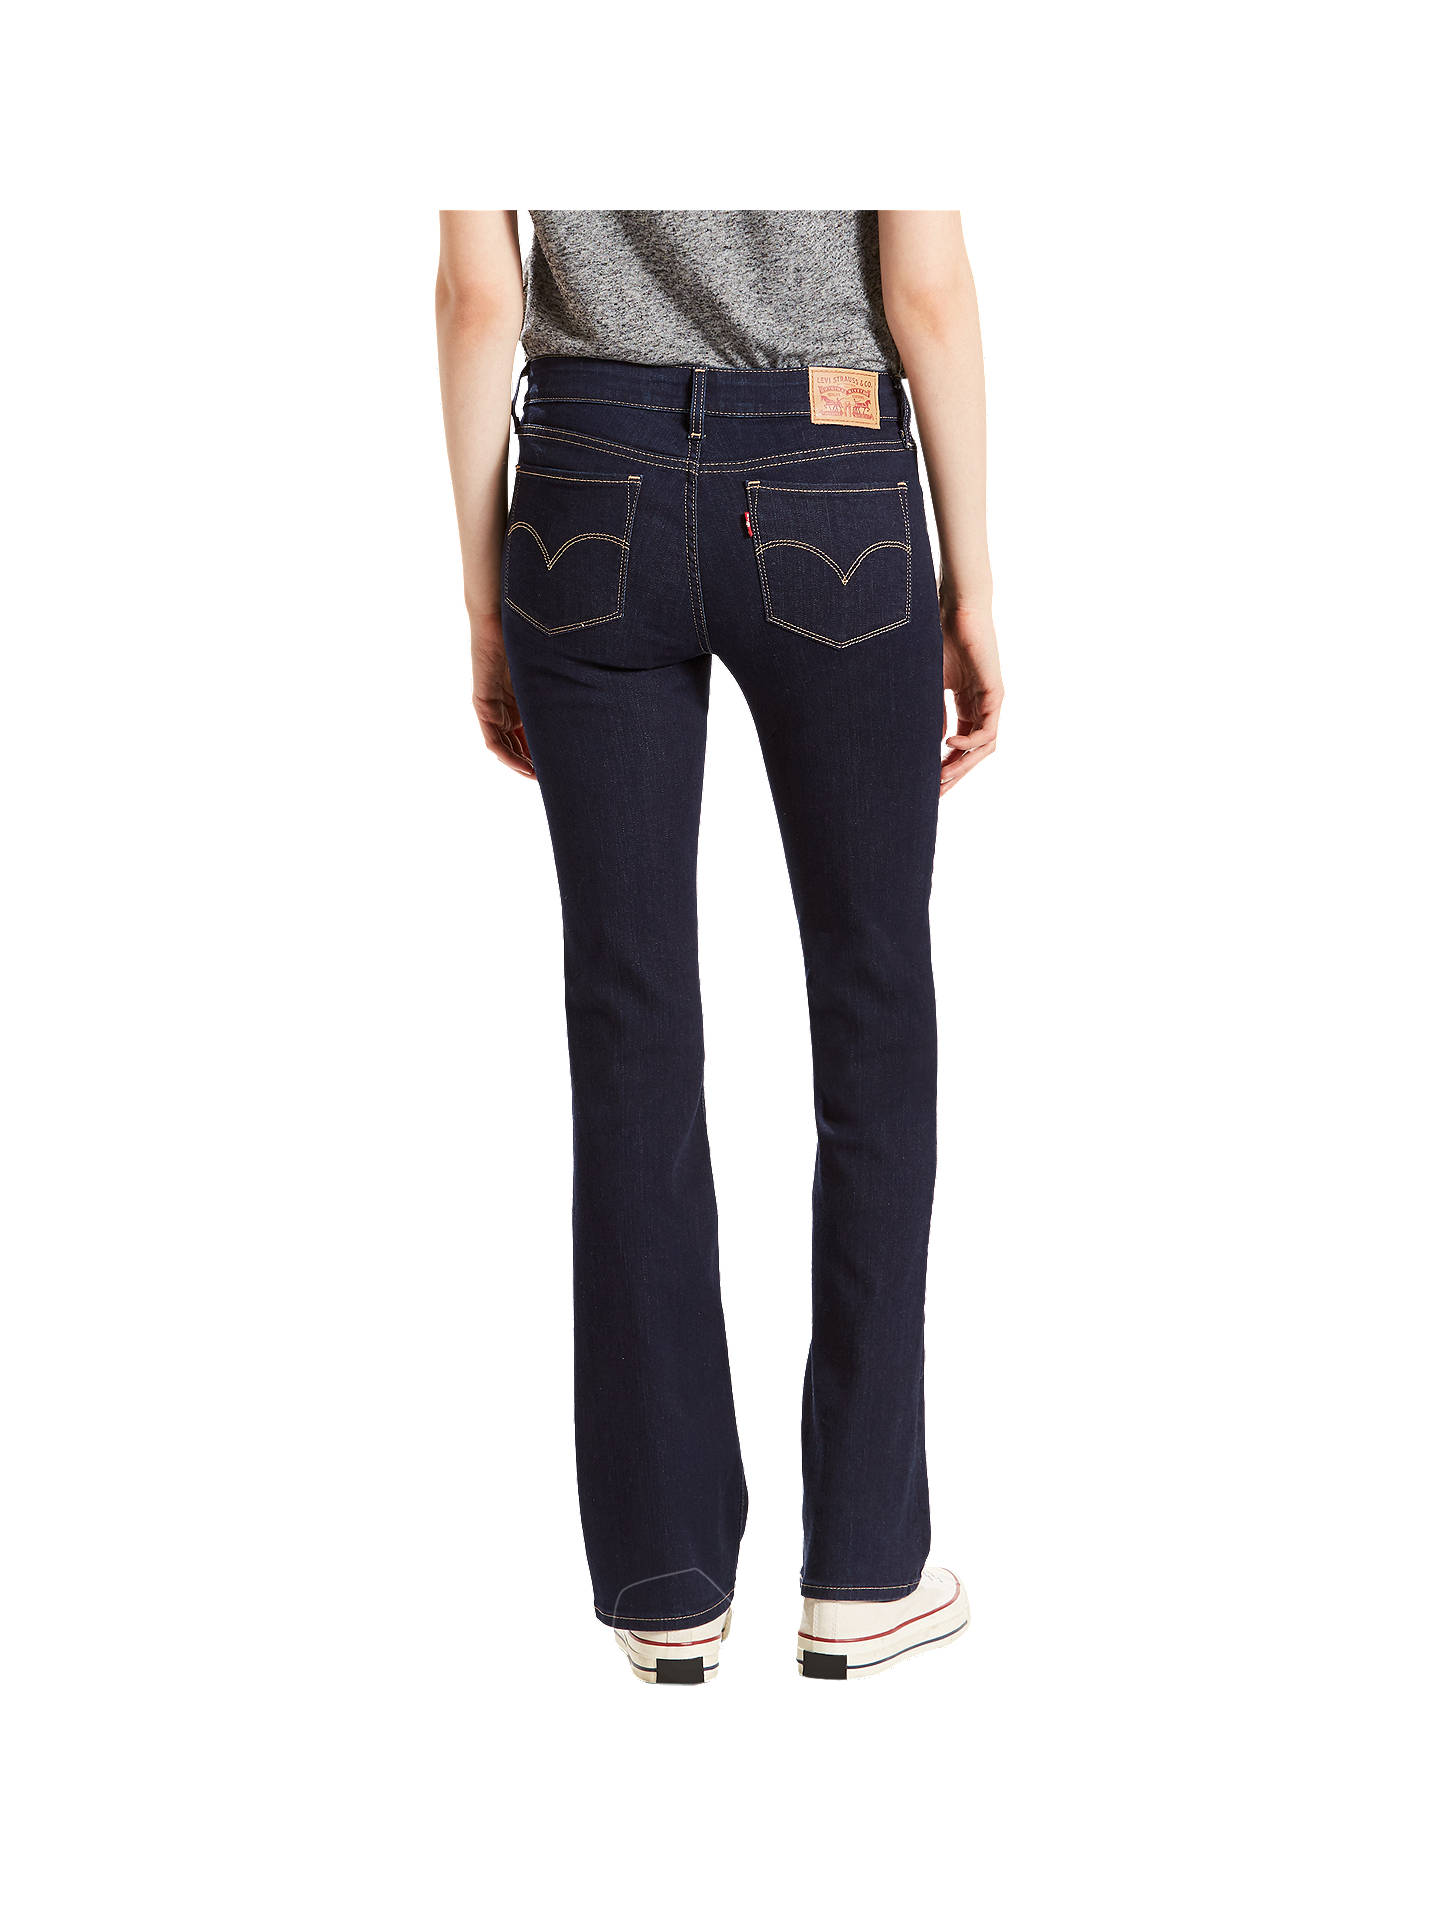 Buy Levi's 715 Mid Rise Bootcut Jeans, Lone Wolf, W30/L30 Online at johnlewis.com